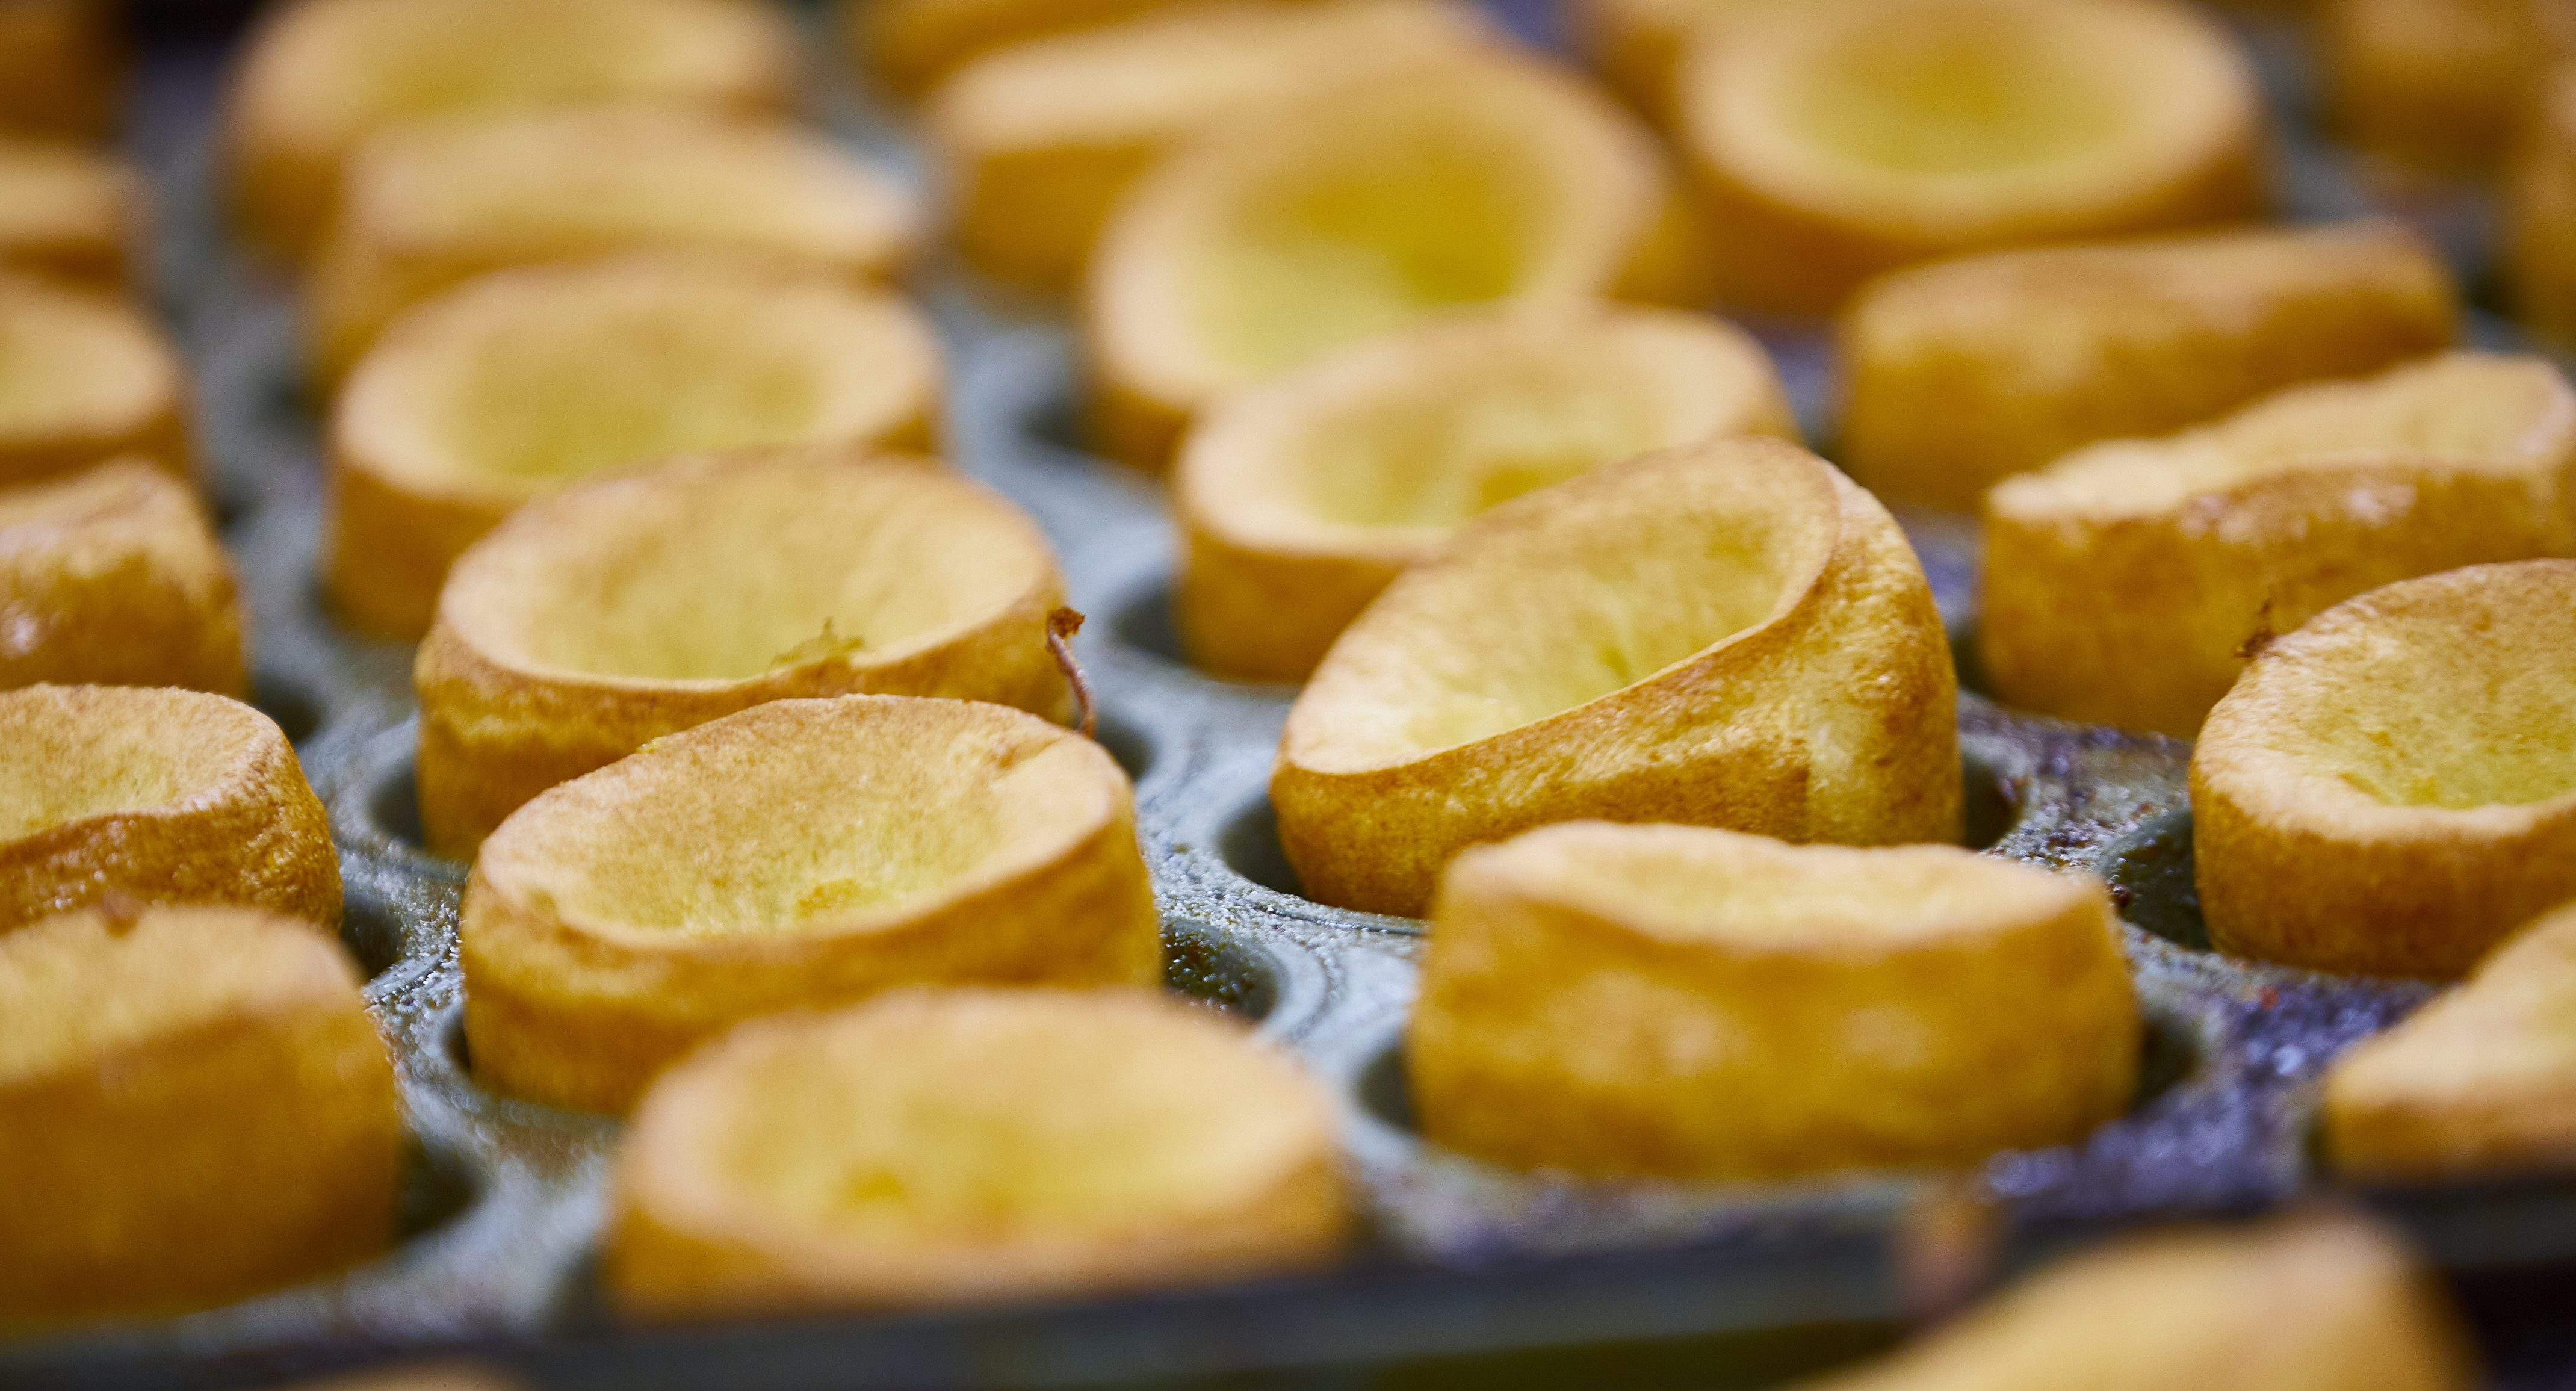 Aunt Bessie's is giving away thousands of free Yorkshire puddings this weekend